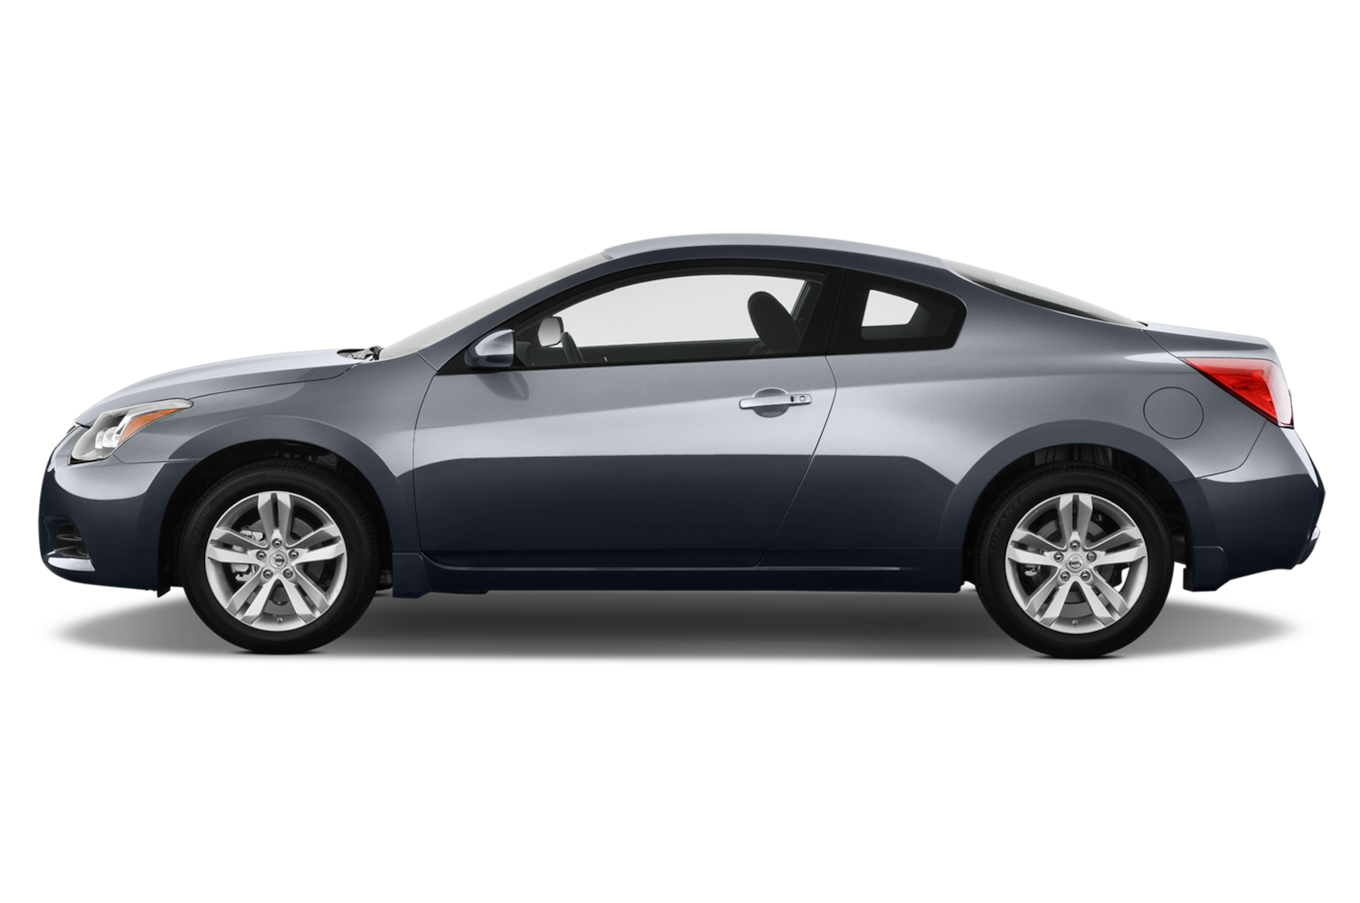 82 The 2010 Nissan Altima Coupe New Concept with 2010 Nissan Altima Coupe